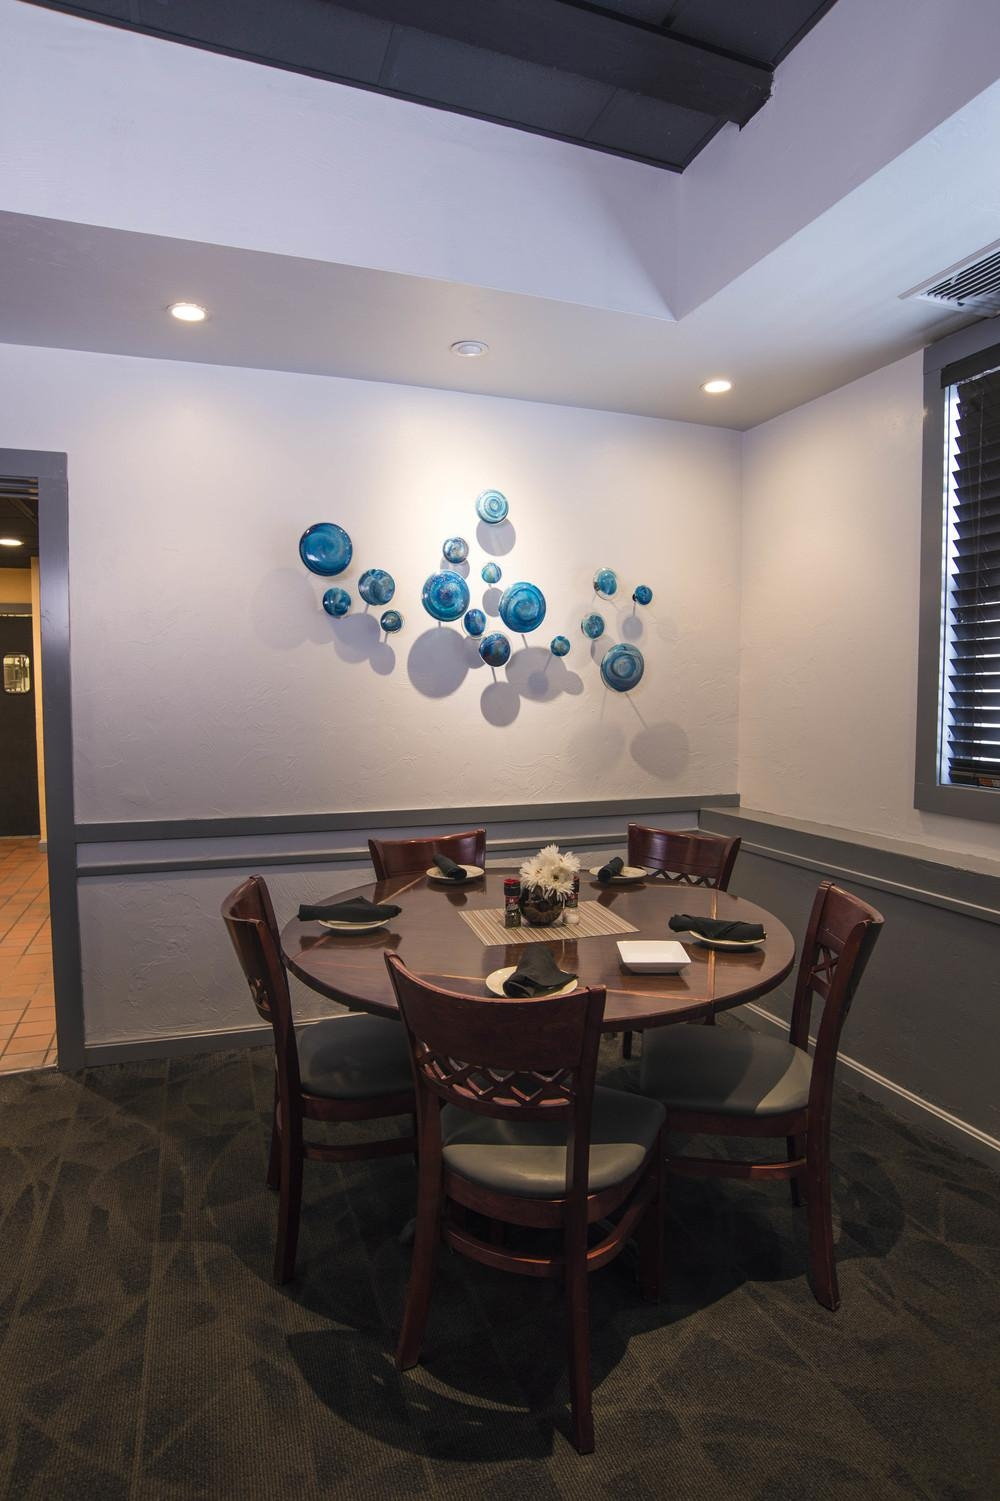 Wall Art | Corporate Art Group | Art Consultant | Interior Design Throughout Corporate Wall Art (Image 18 of 20)